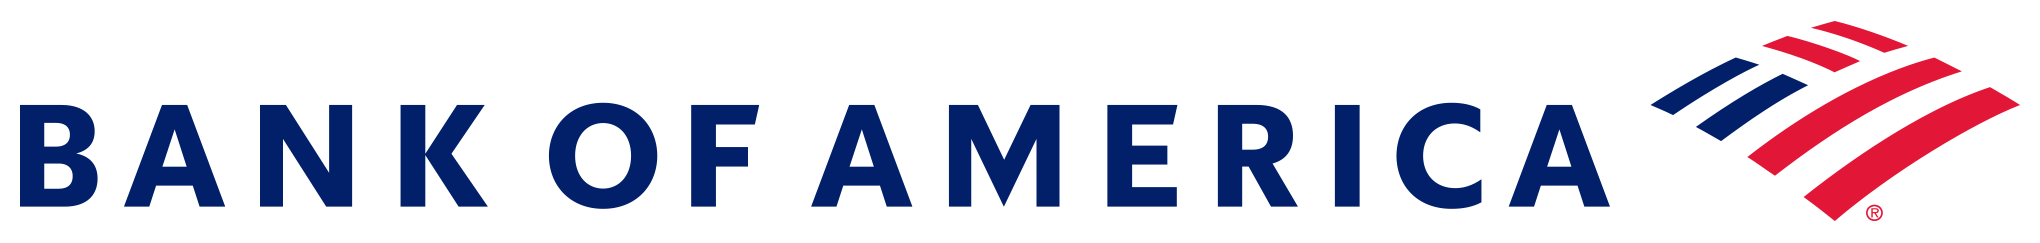 bank_of_america_logo_a